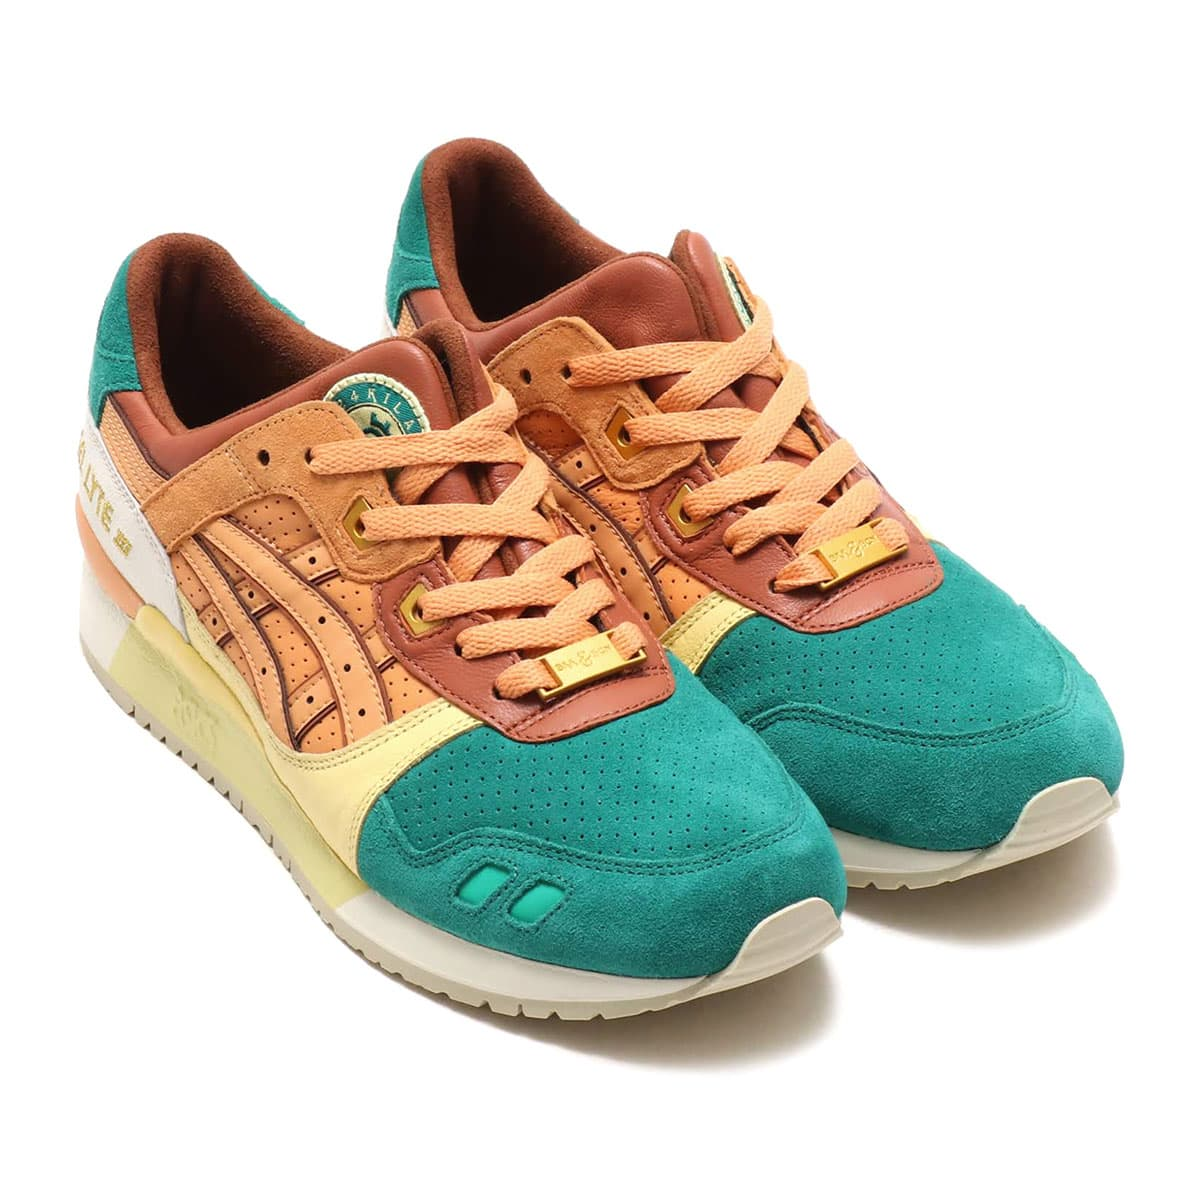 ASICSTIGER GEL-LYTE III 24Kilates  BROWN/GREEN_photo_large